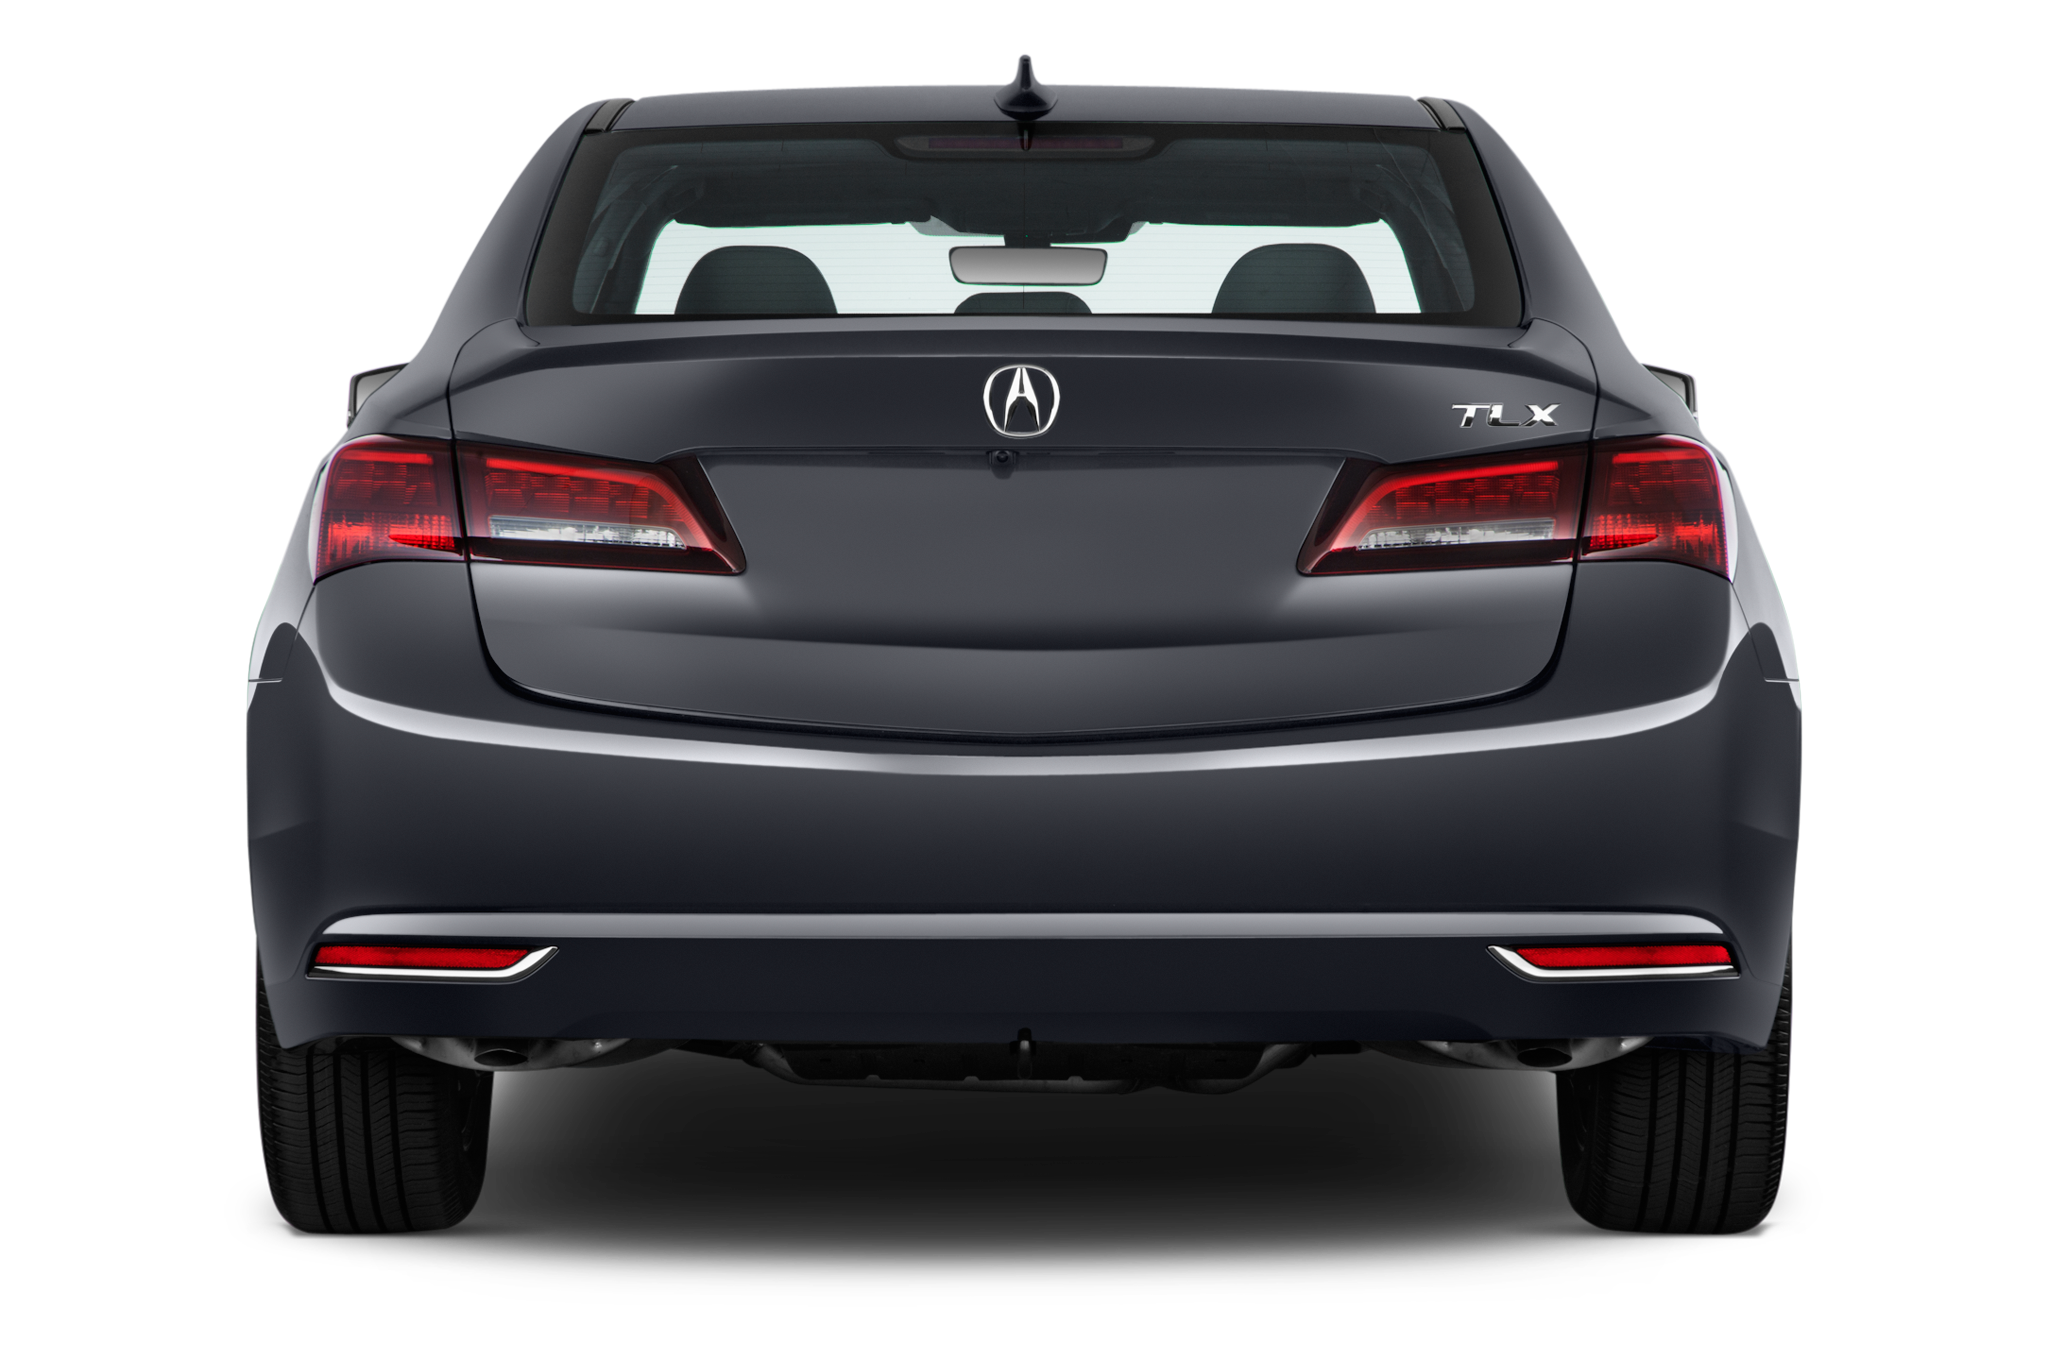 2016 Acura Tlx Manual >> 2017 Acura TLX 3.5 SH-AWD One Week Review | Automobile Magazine